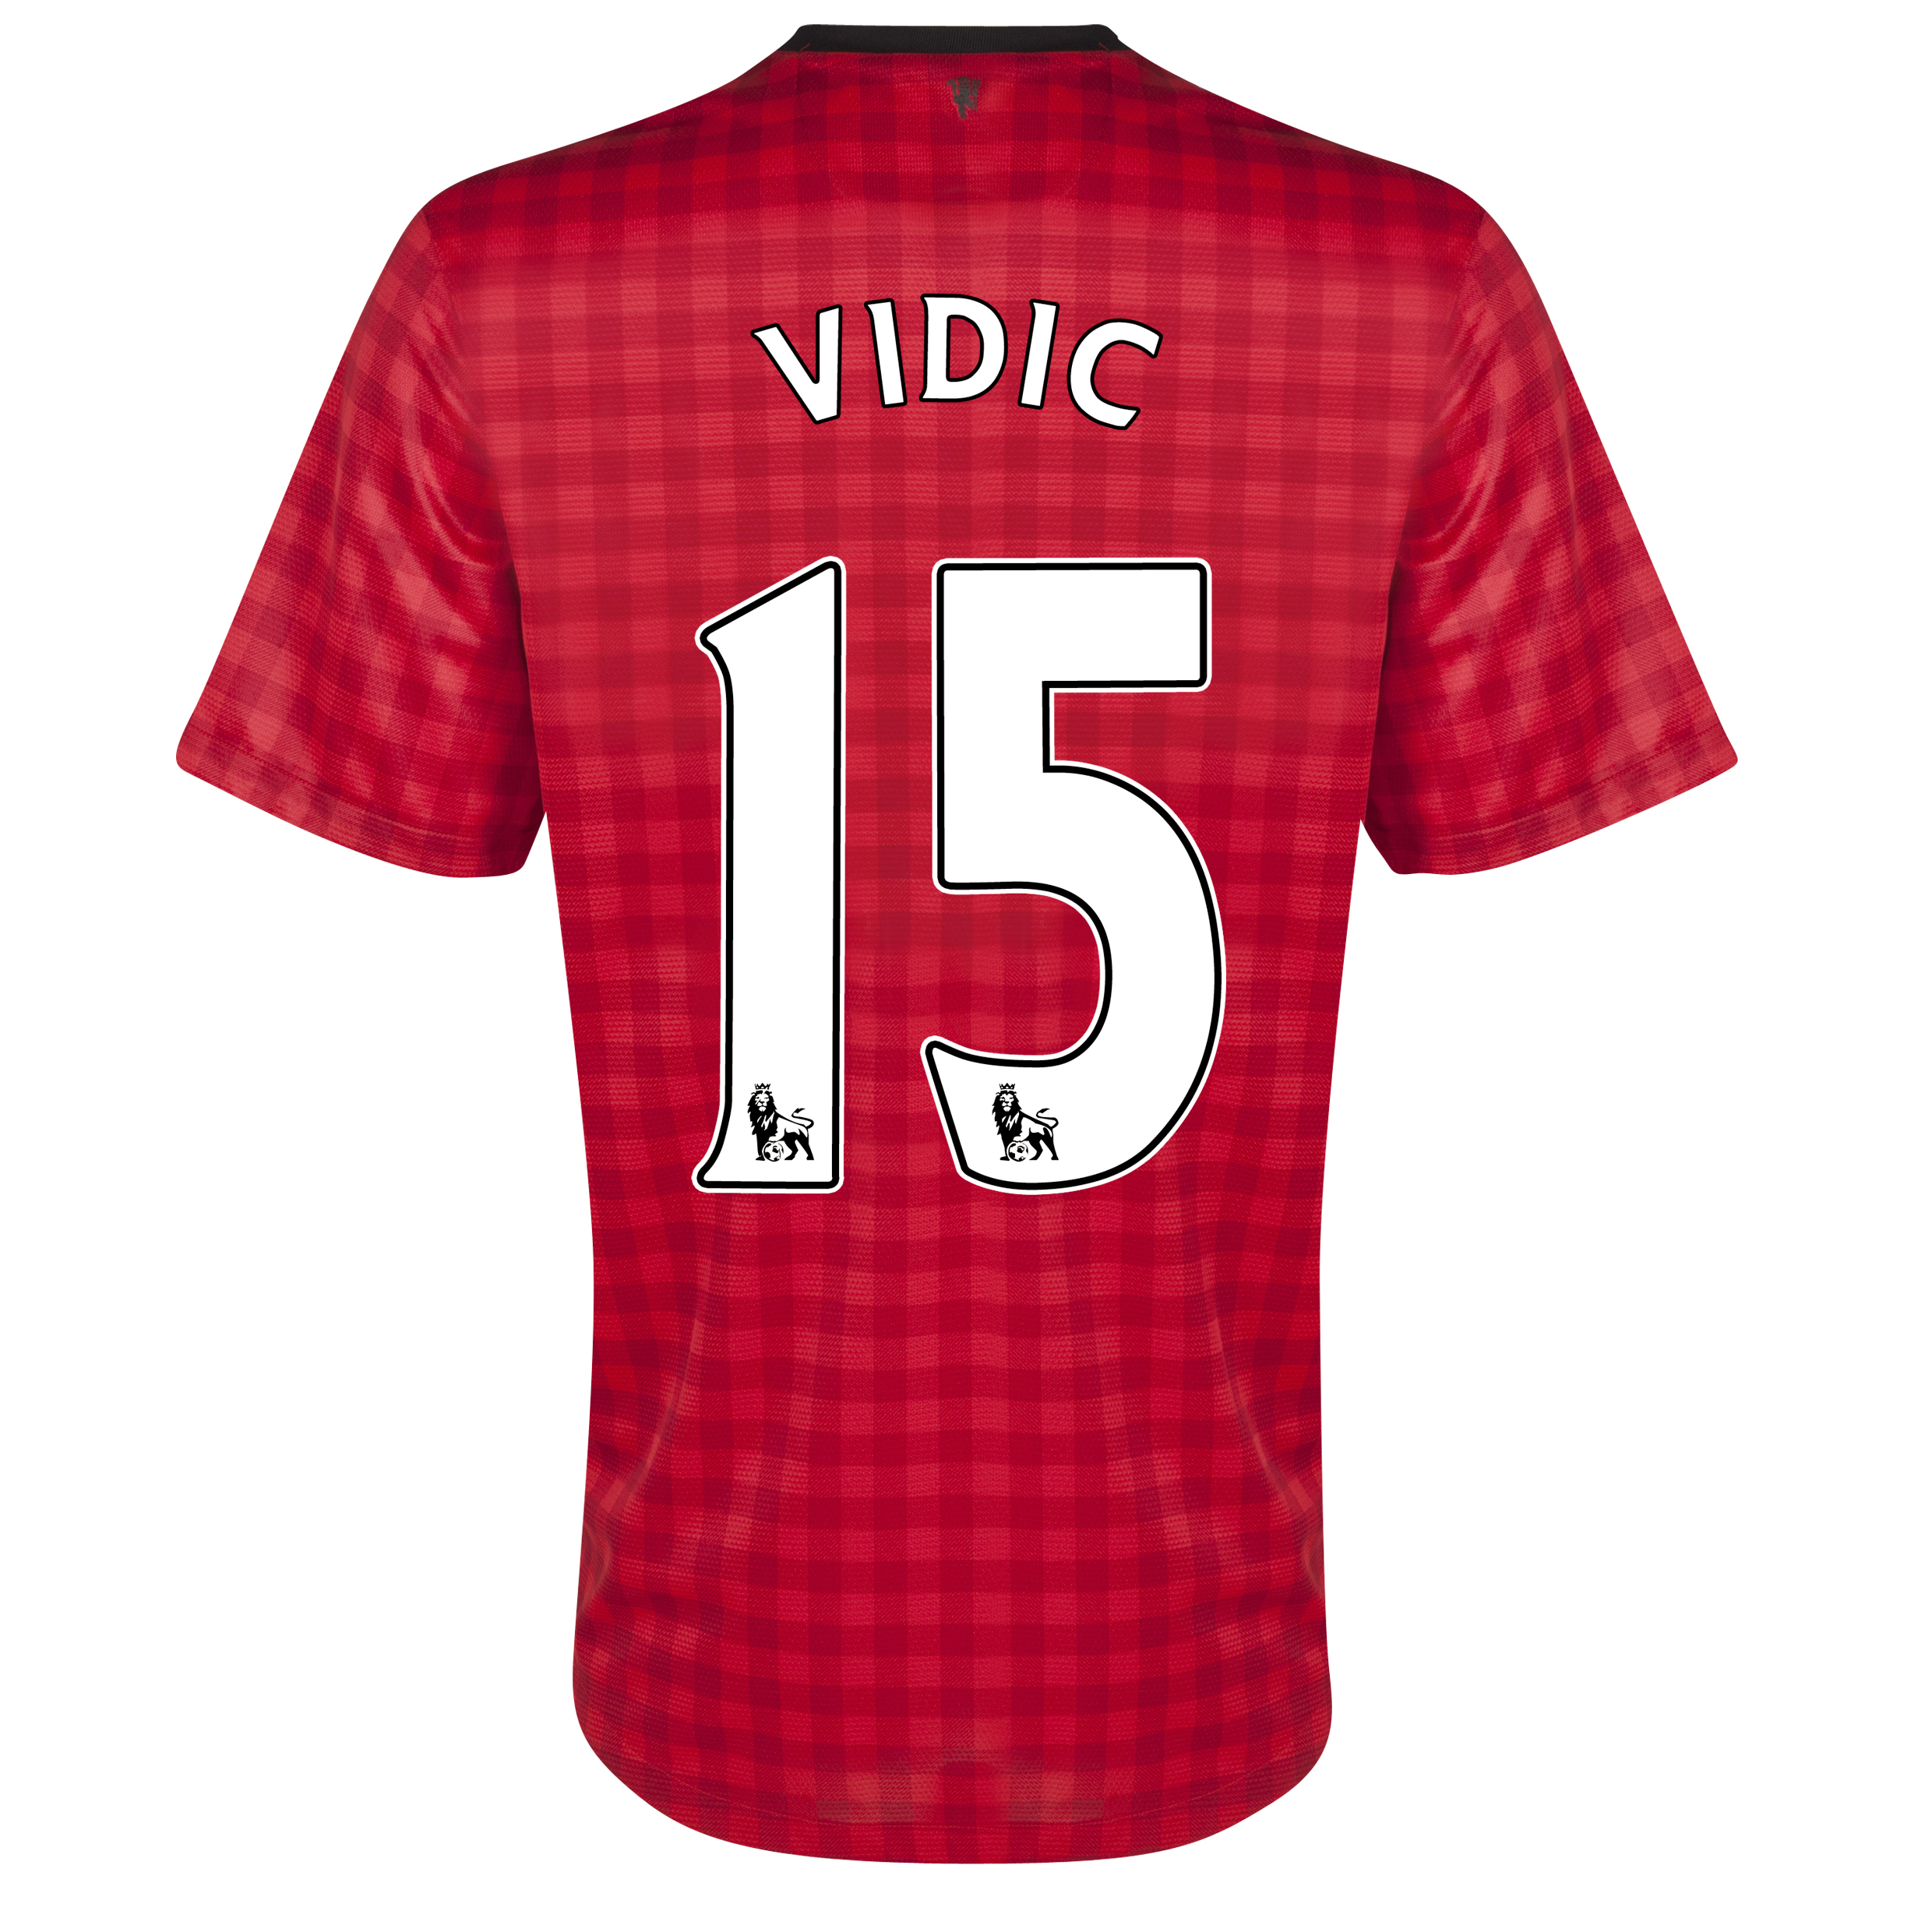 Manchester United Home Shirt 2012/13 with Vidic 15 printing